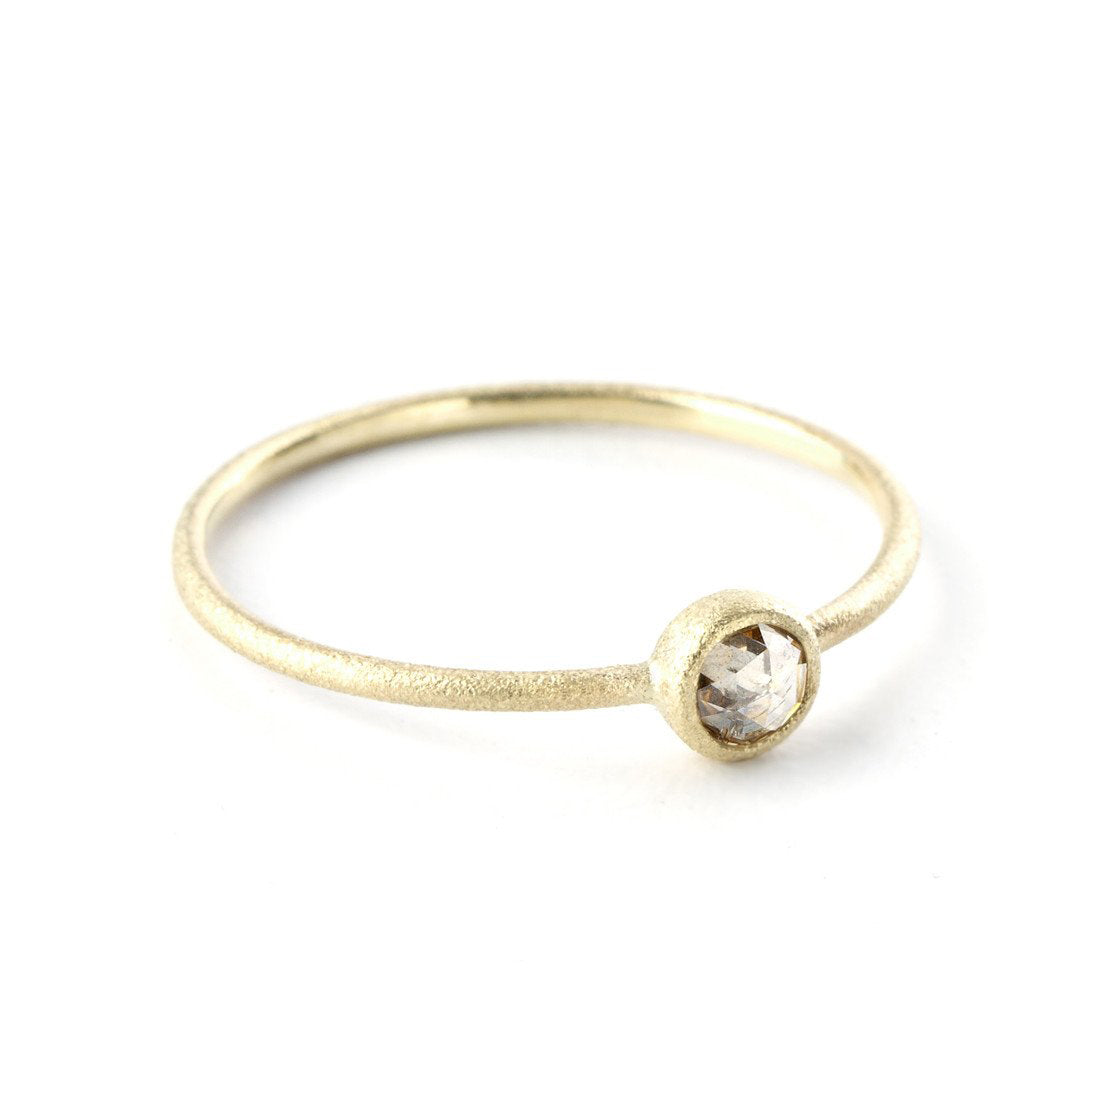 Bezel Set Champagne Diamond Ring, 14K Yellow Gold